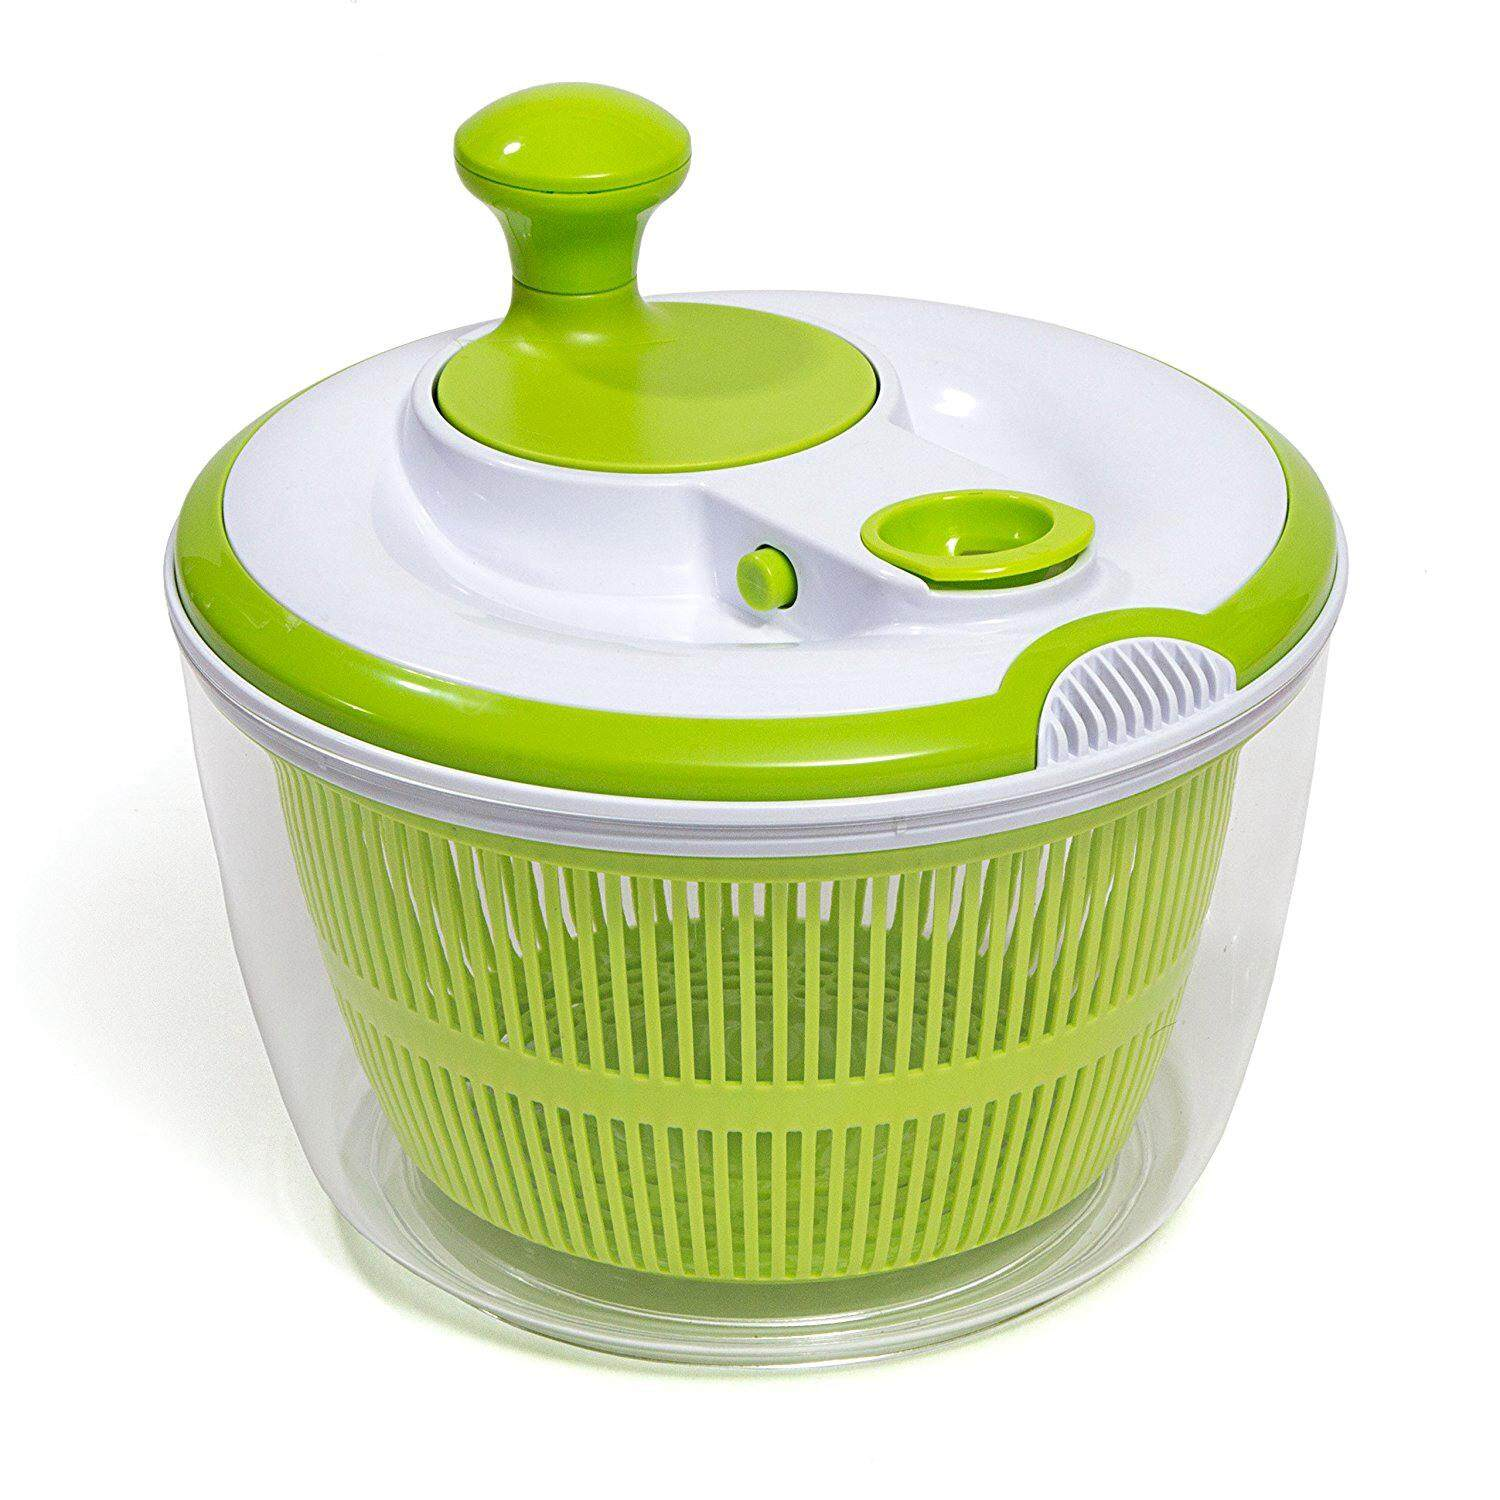 Manual Vegetable Dehydrator Basket Washer Fruits Salad Lettuce Spinner Strainer Kitchen Gadget By Yomichew.